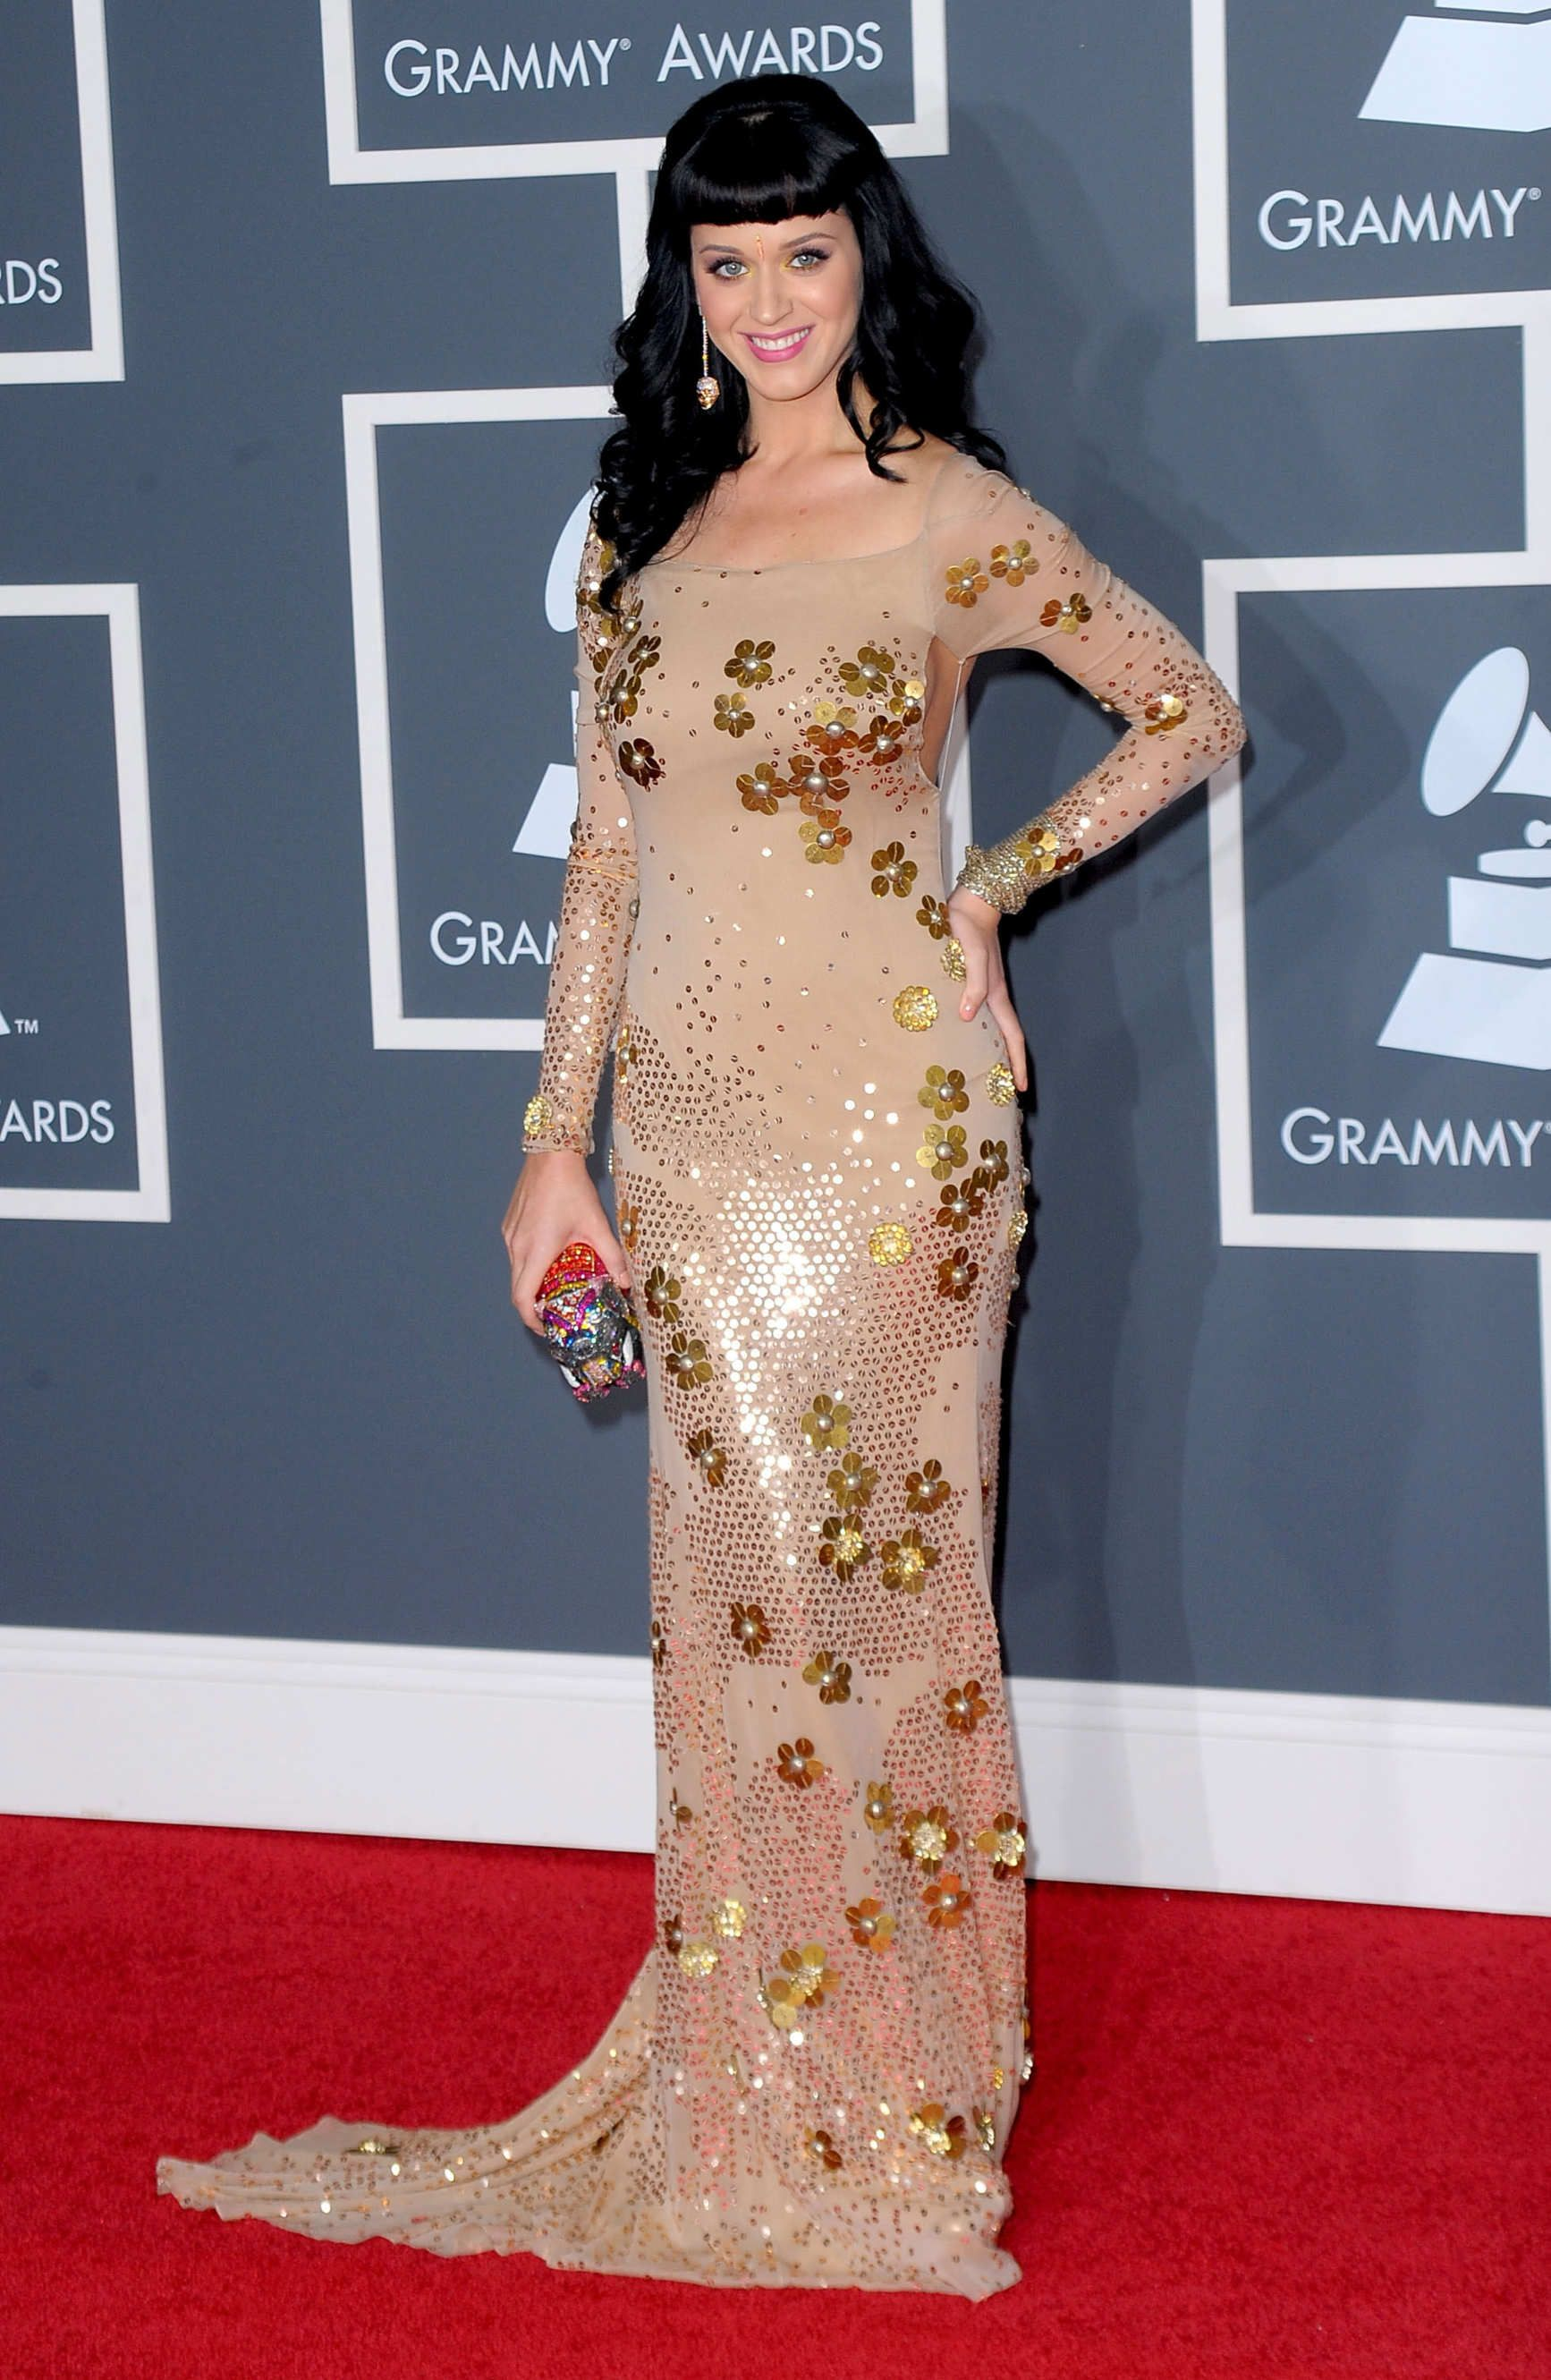 Katy Perry Covered Herself In Footballs Katy Perry Red Carpet Looks Fashion